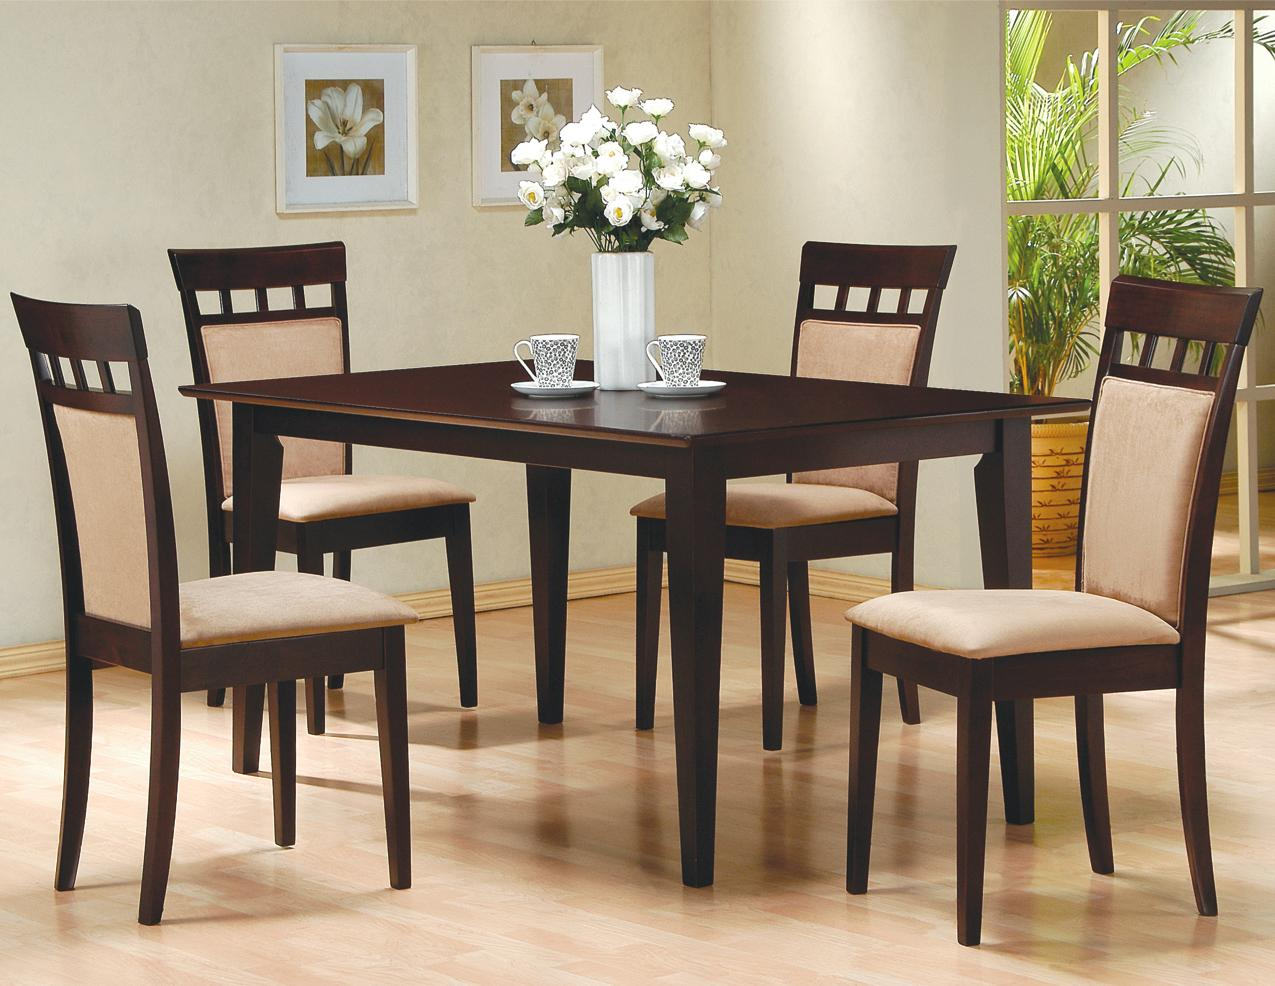 furniture height stores modern stools pines dining high table dc counter room pc washington